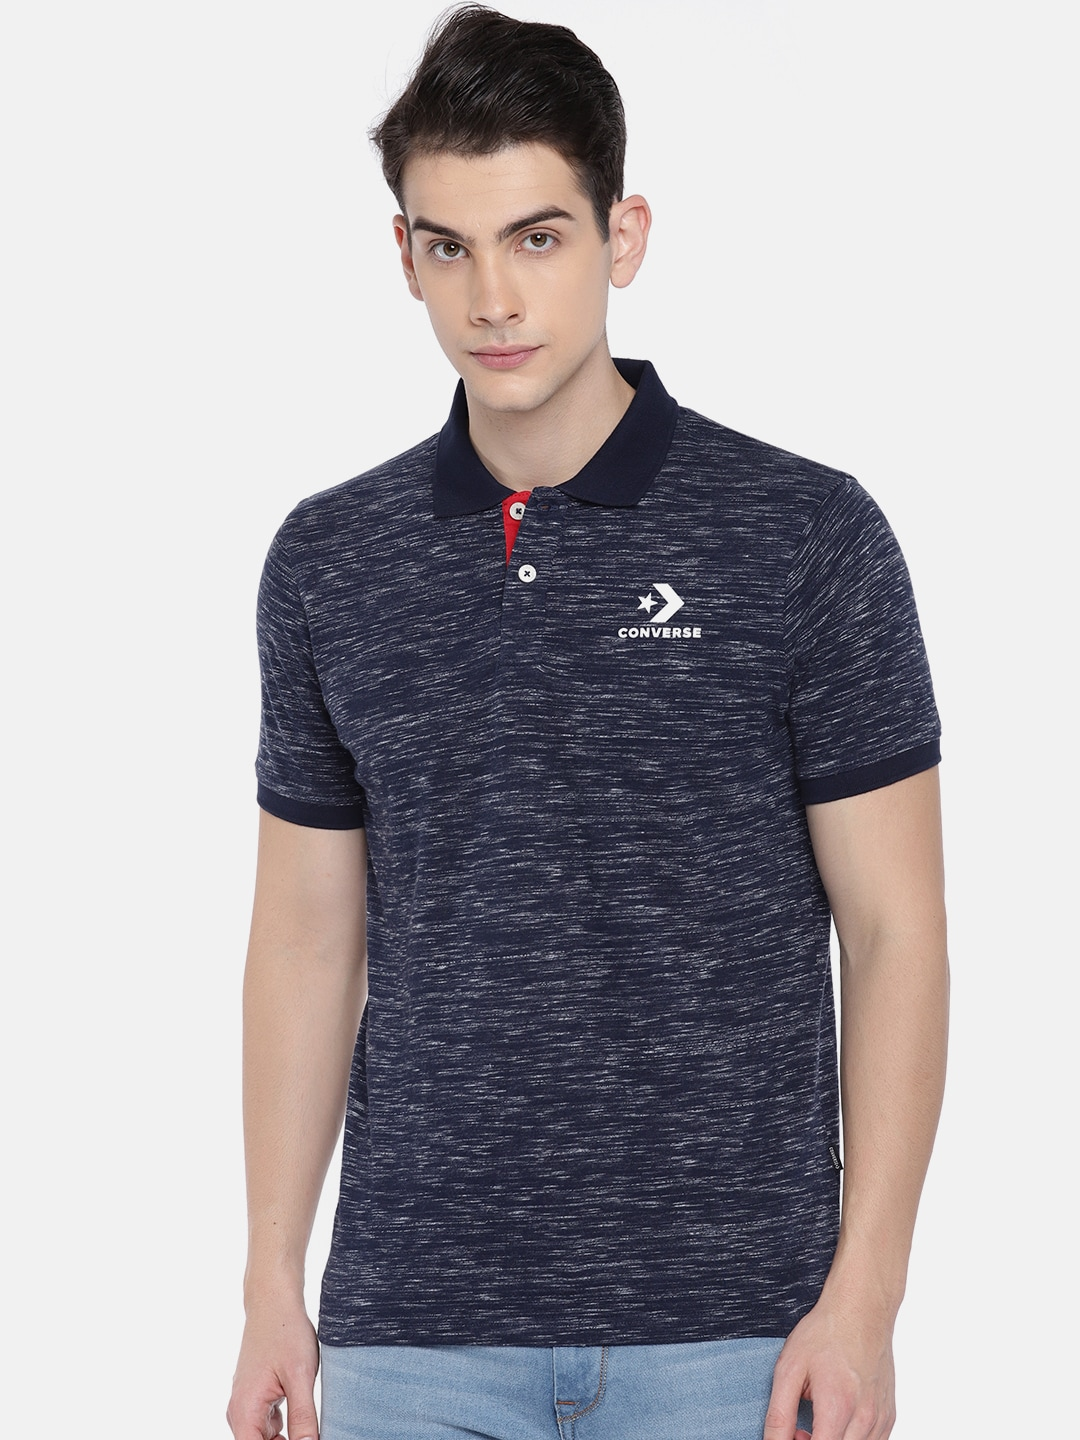 6248c66a27c5d1 Converse Tshirts - Buy Converse Tshirts Online in India